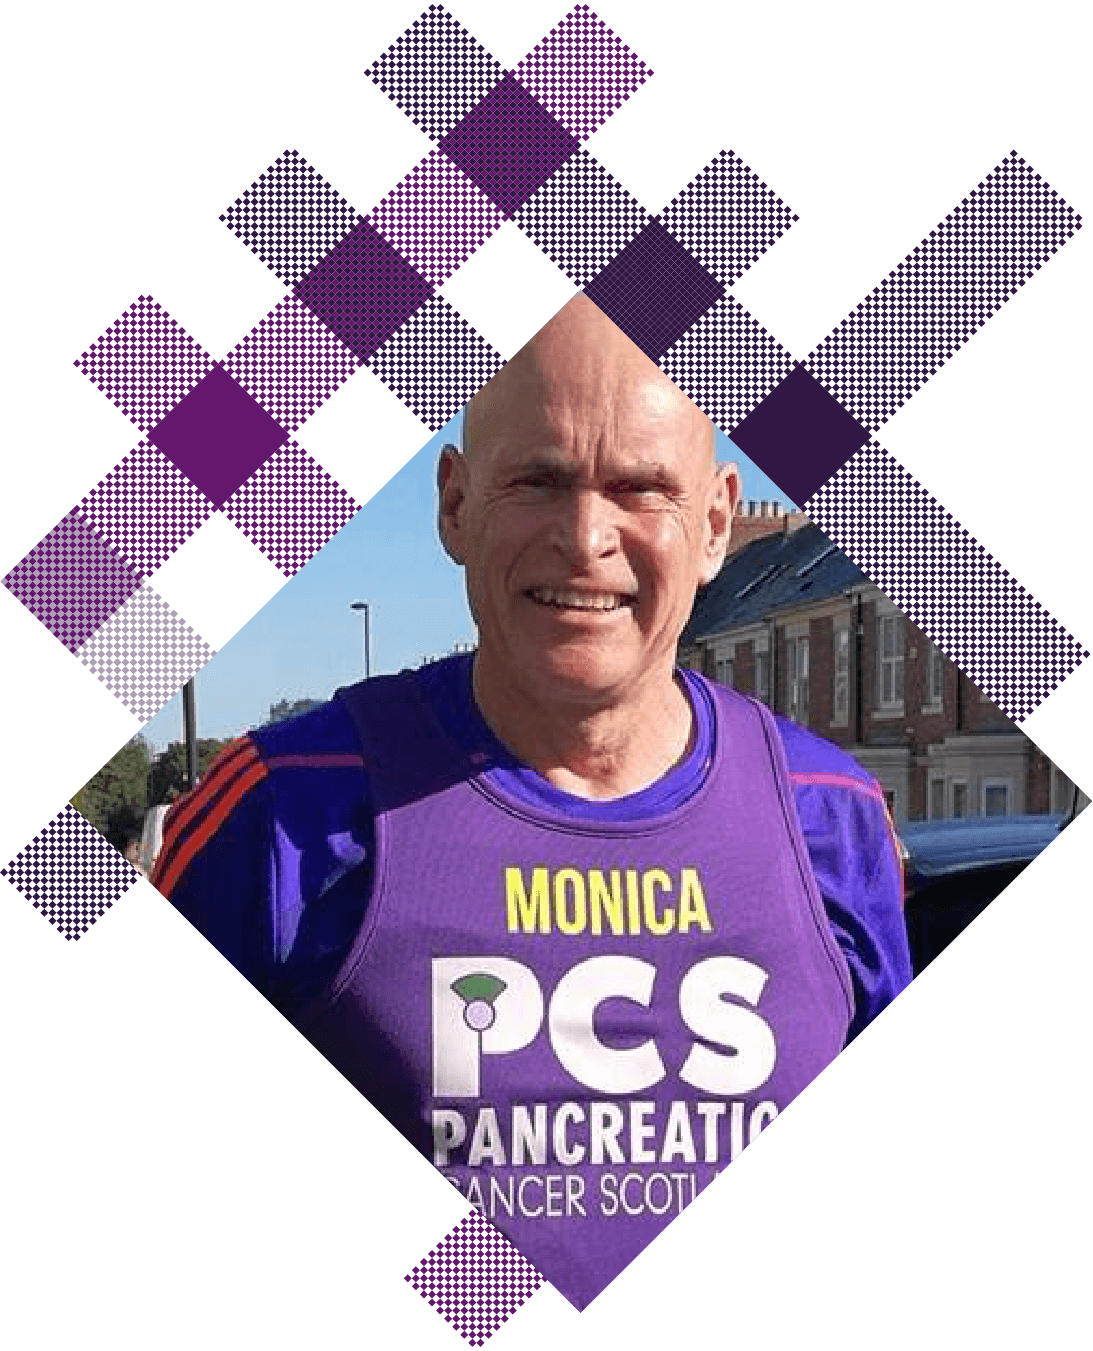 One of our Pan Can Clan members Running in a marathon